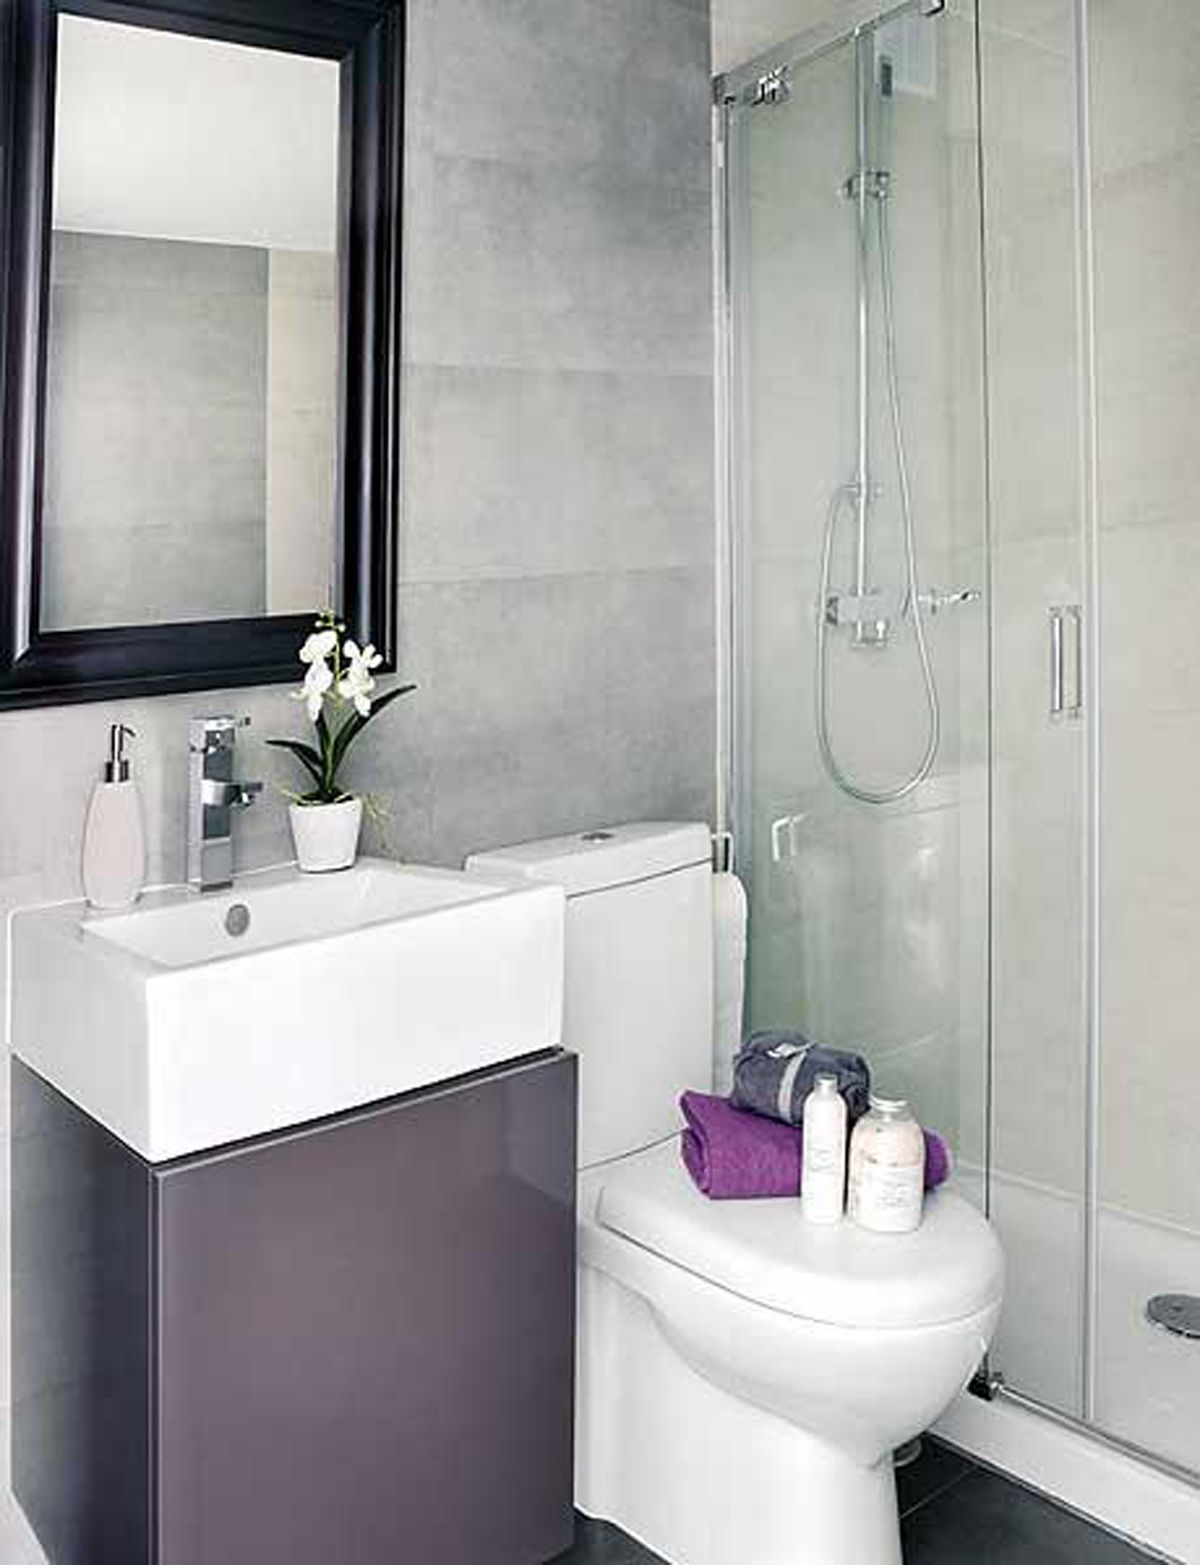 intrinsic interior design applied in small apartment architecture luxticacomluxticacom - Apartment Bathrooms Ideas